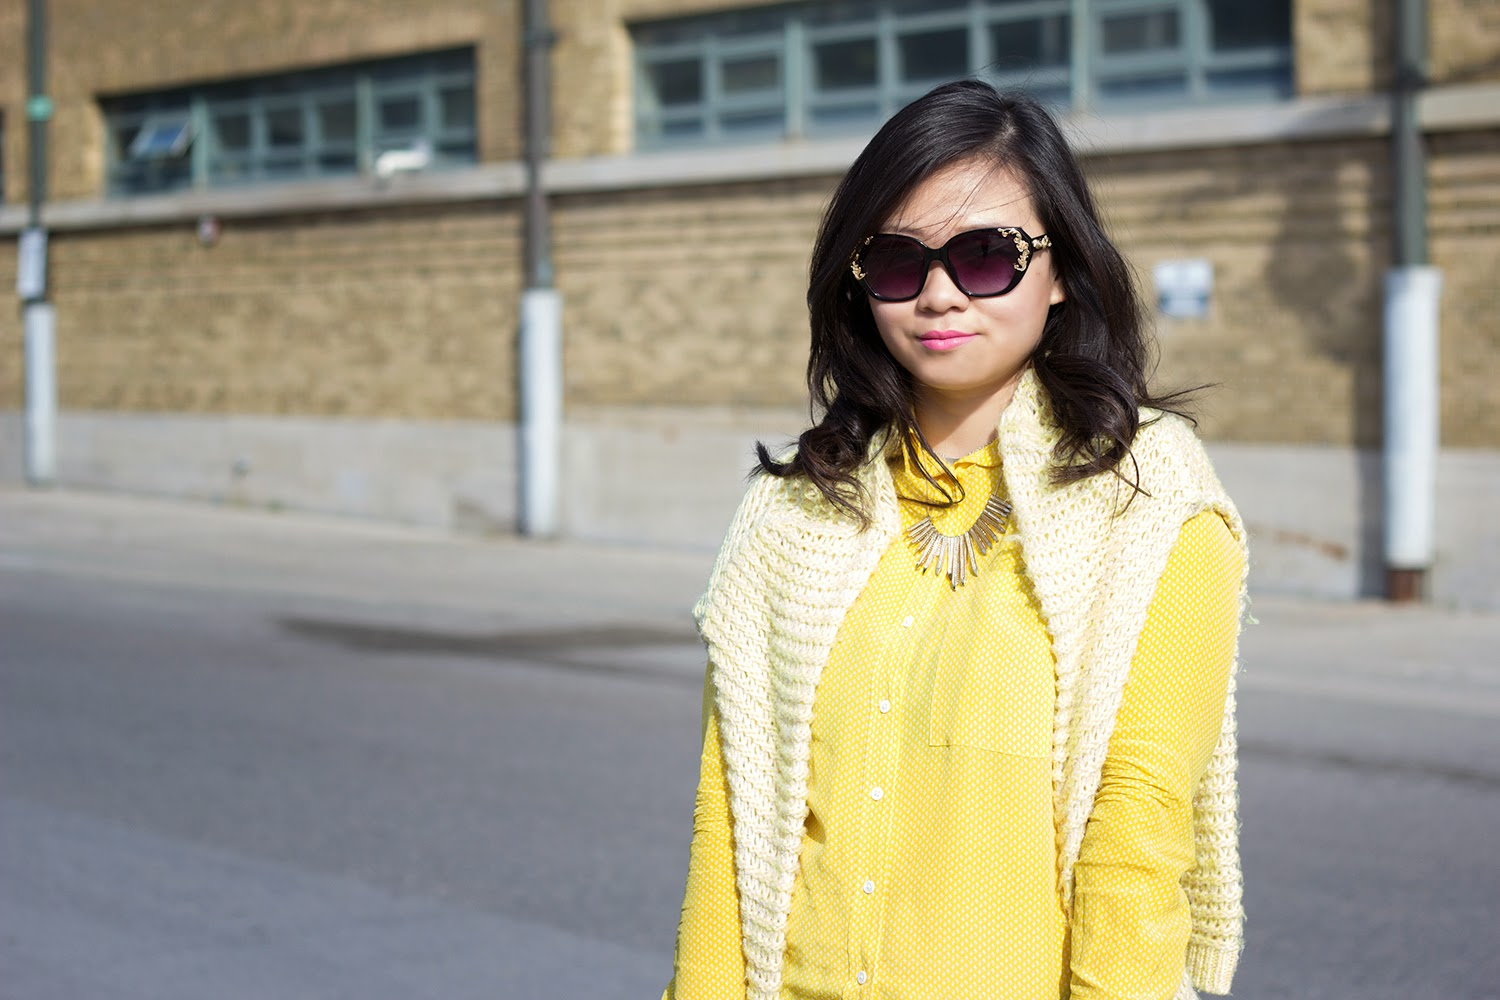 Forever-21-Pullover-Sweater, Club-Monaco-Yellow-Shirt, A-J-Morgan-sun-glasses